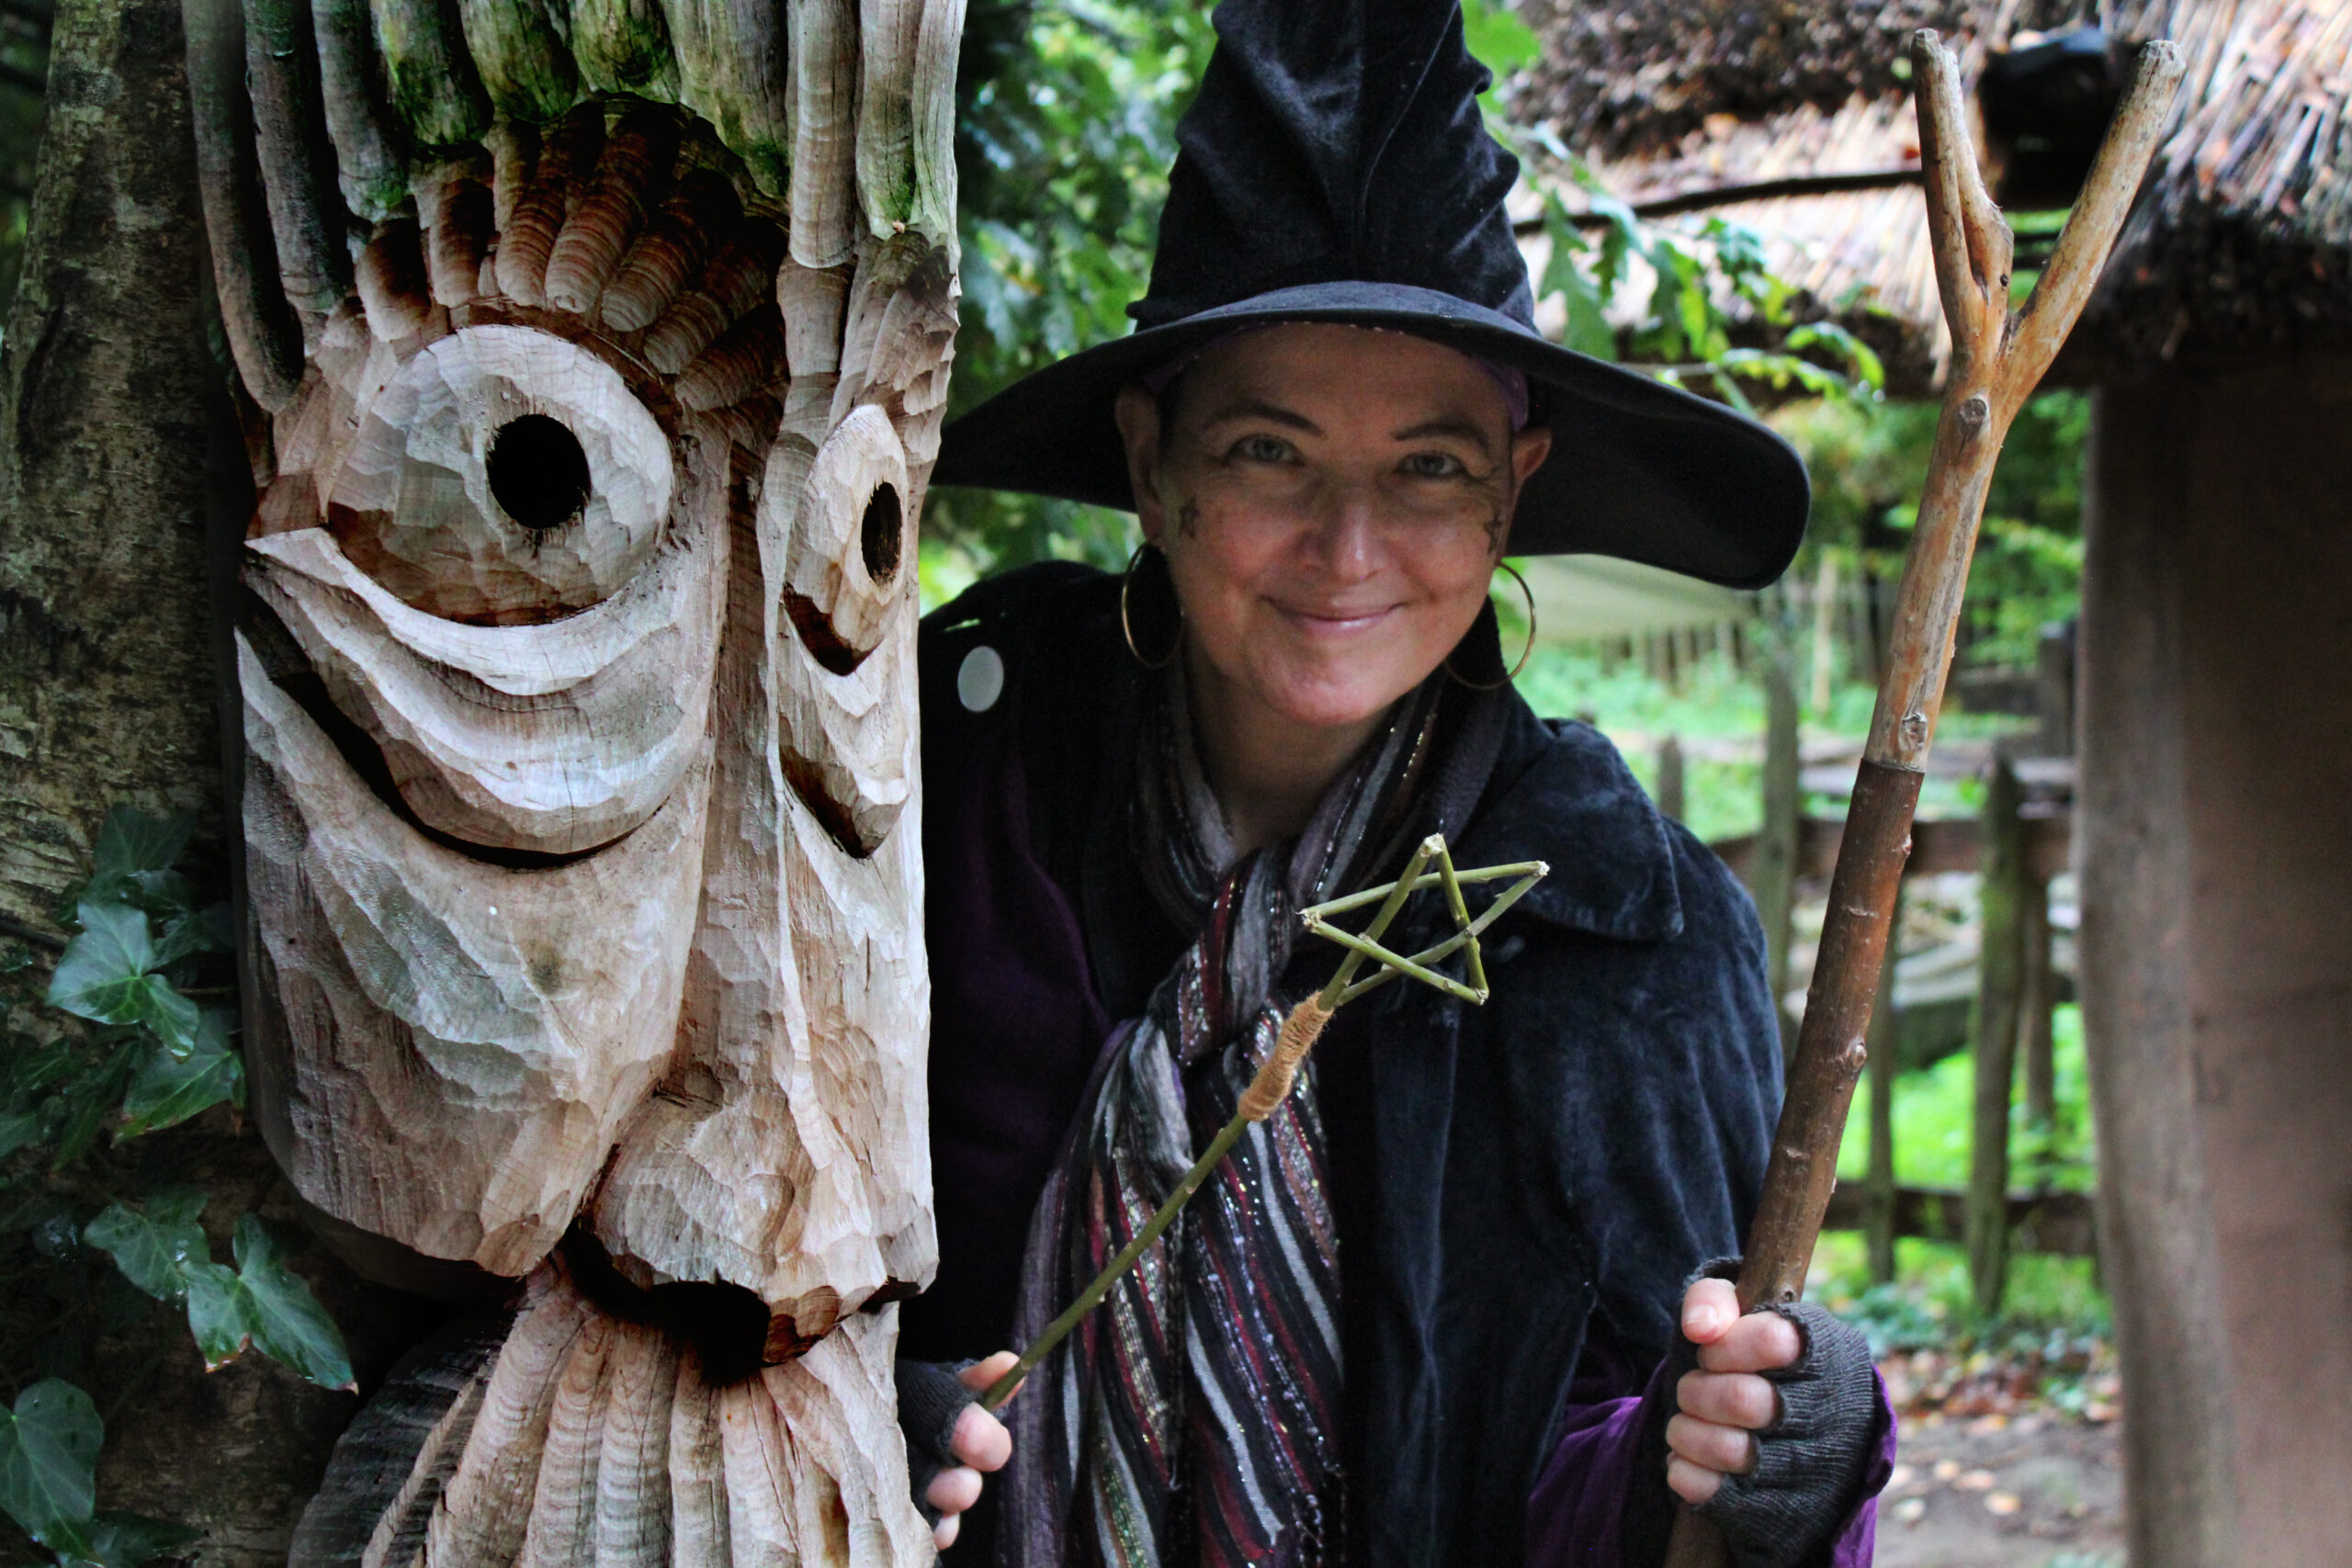 The Witch of Wildwood Escot